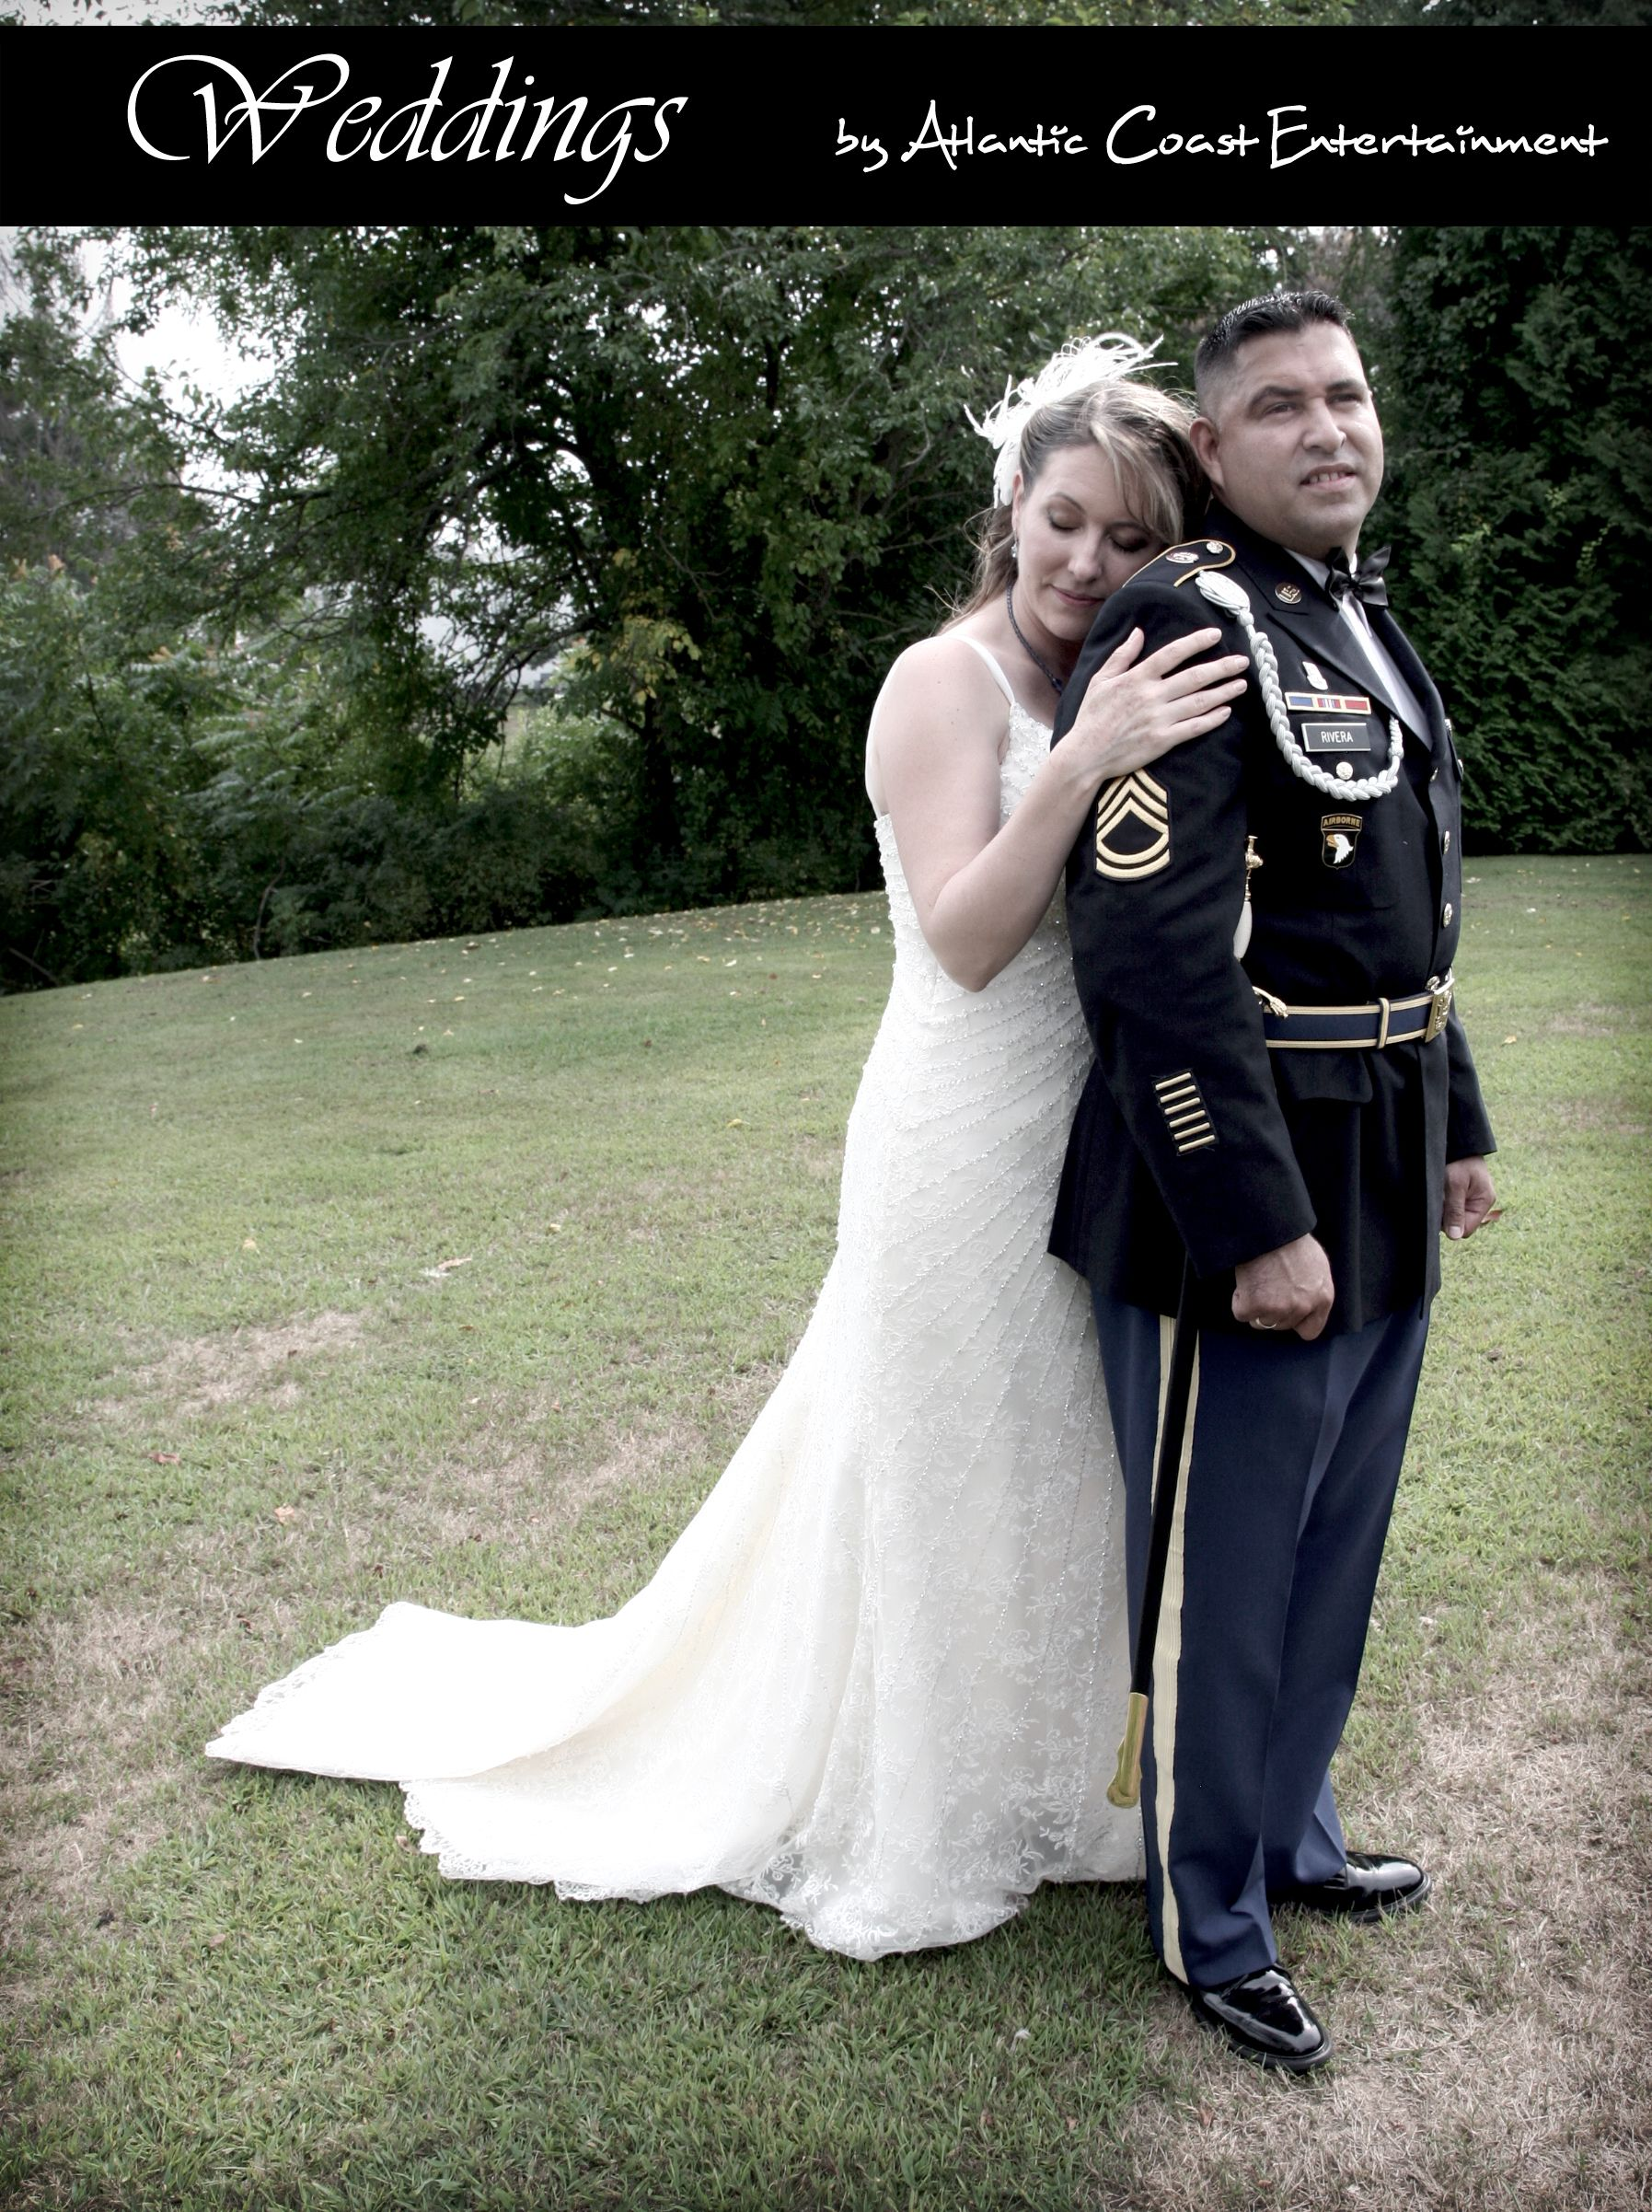 Bride u groom wedding photography military army sword reception